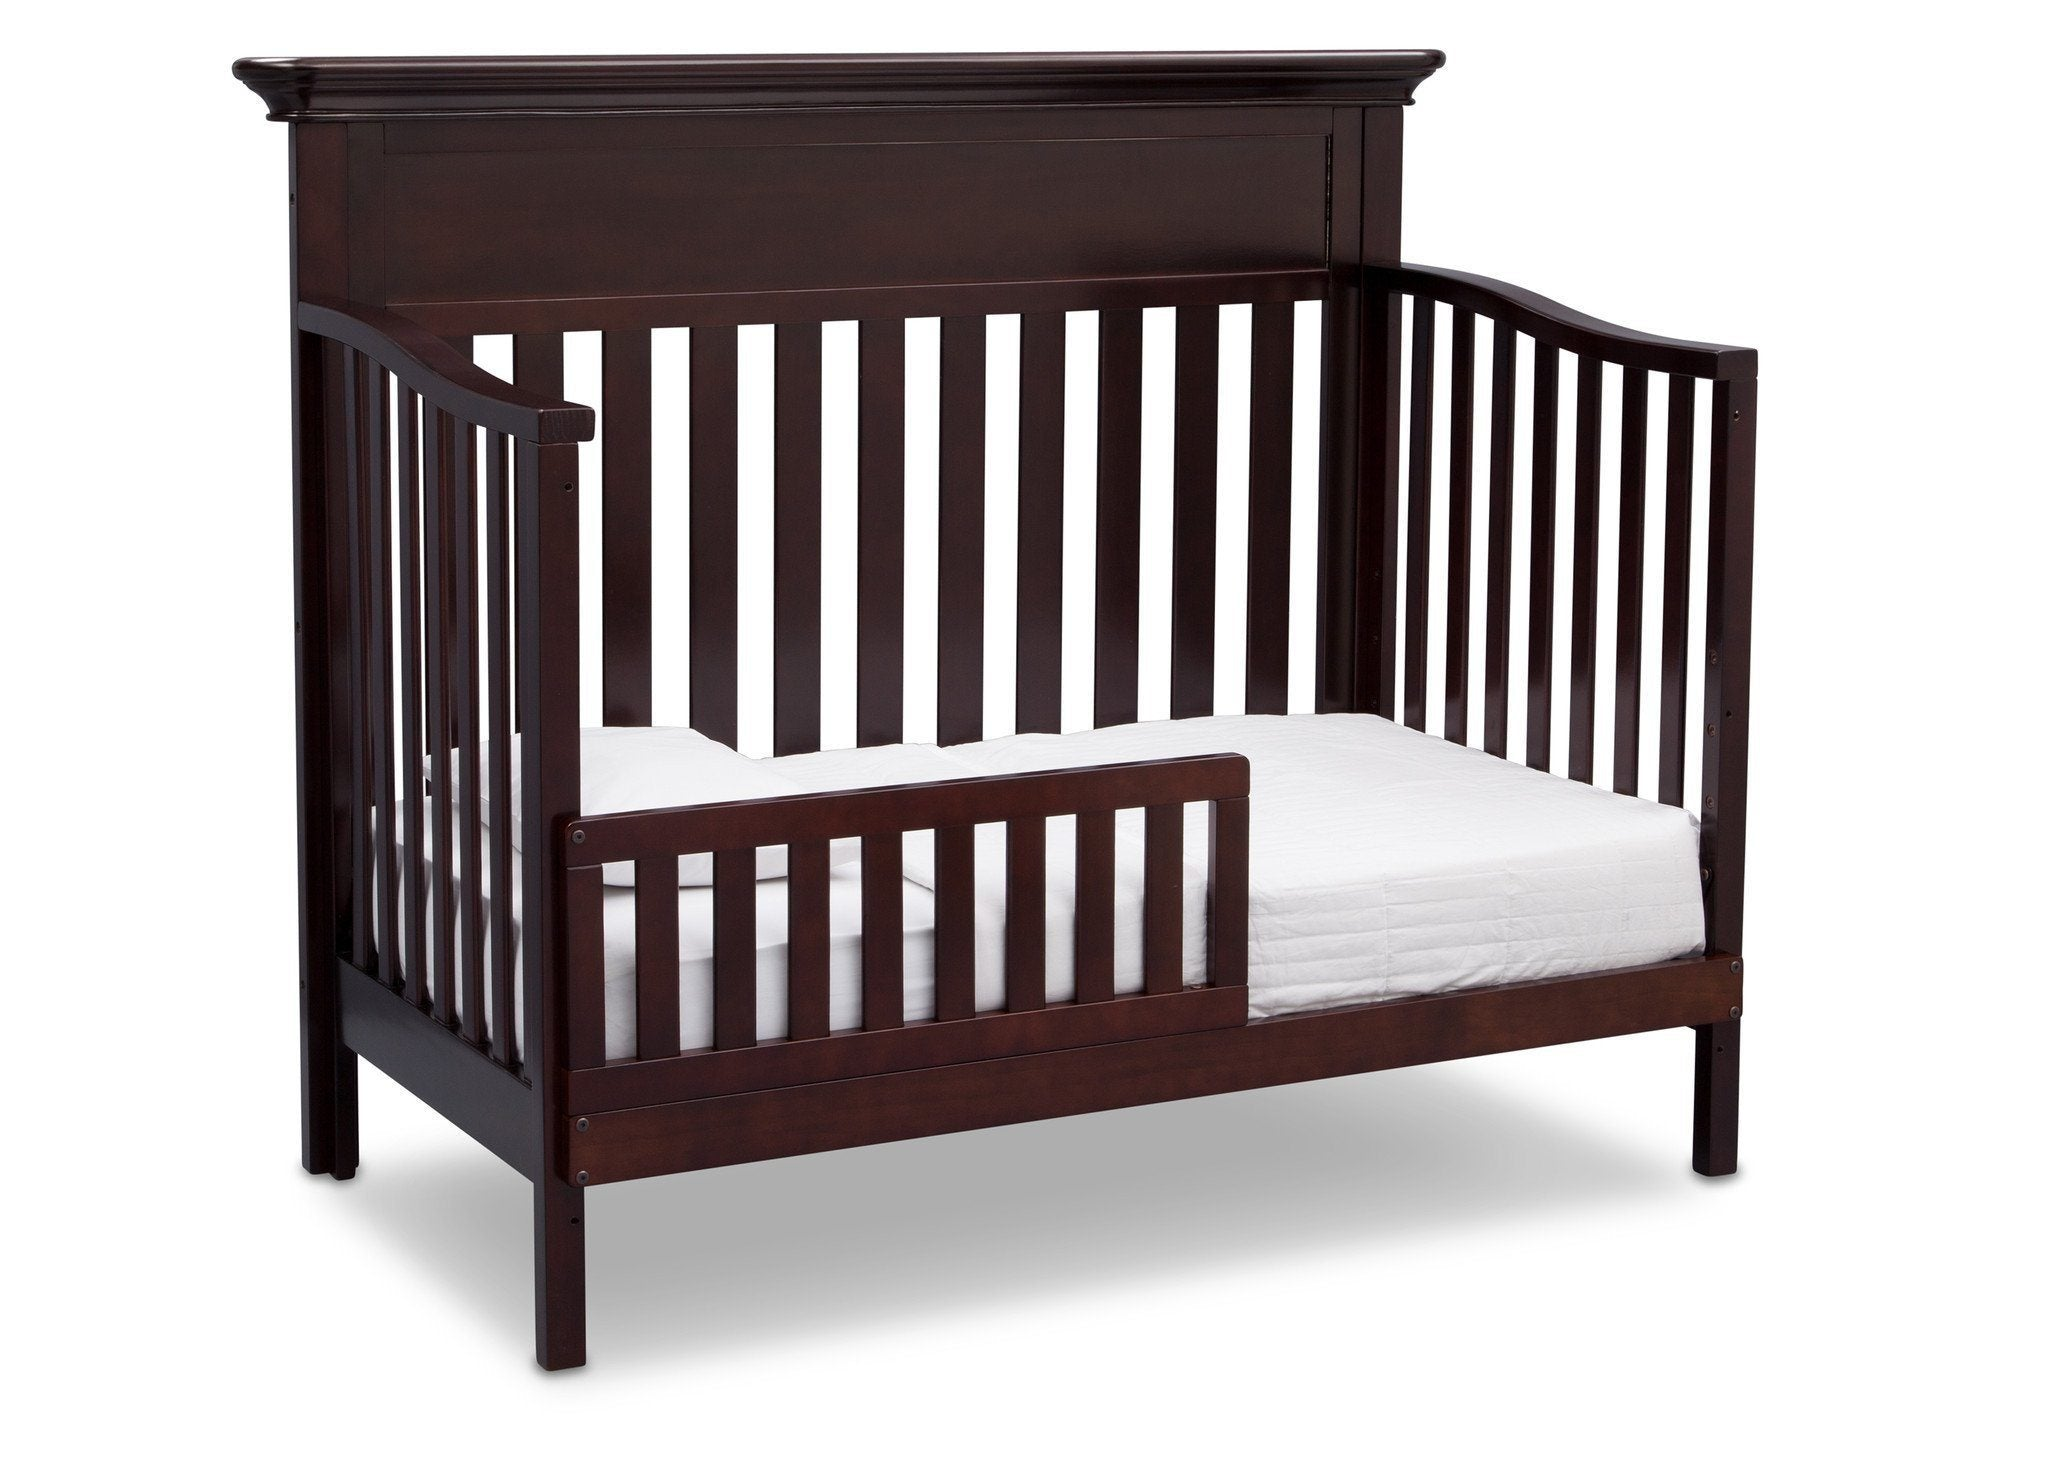 Serta Dark Chocolate (207) Fernwood 4-in-1 Crib, Side View with Crib Conversion c5c